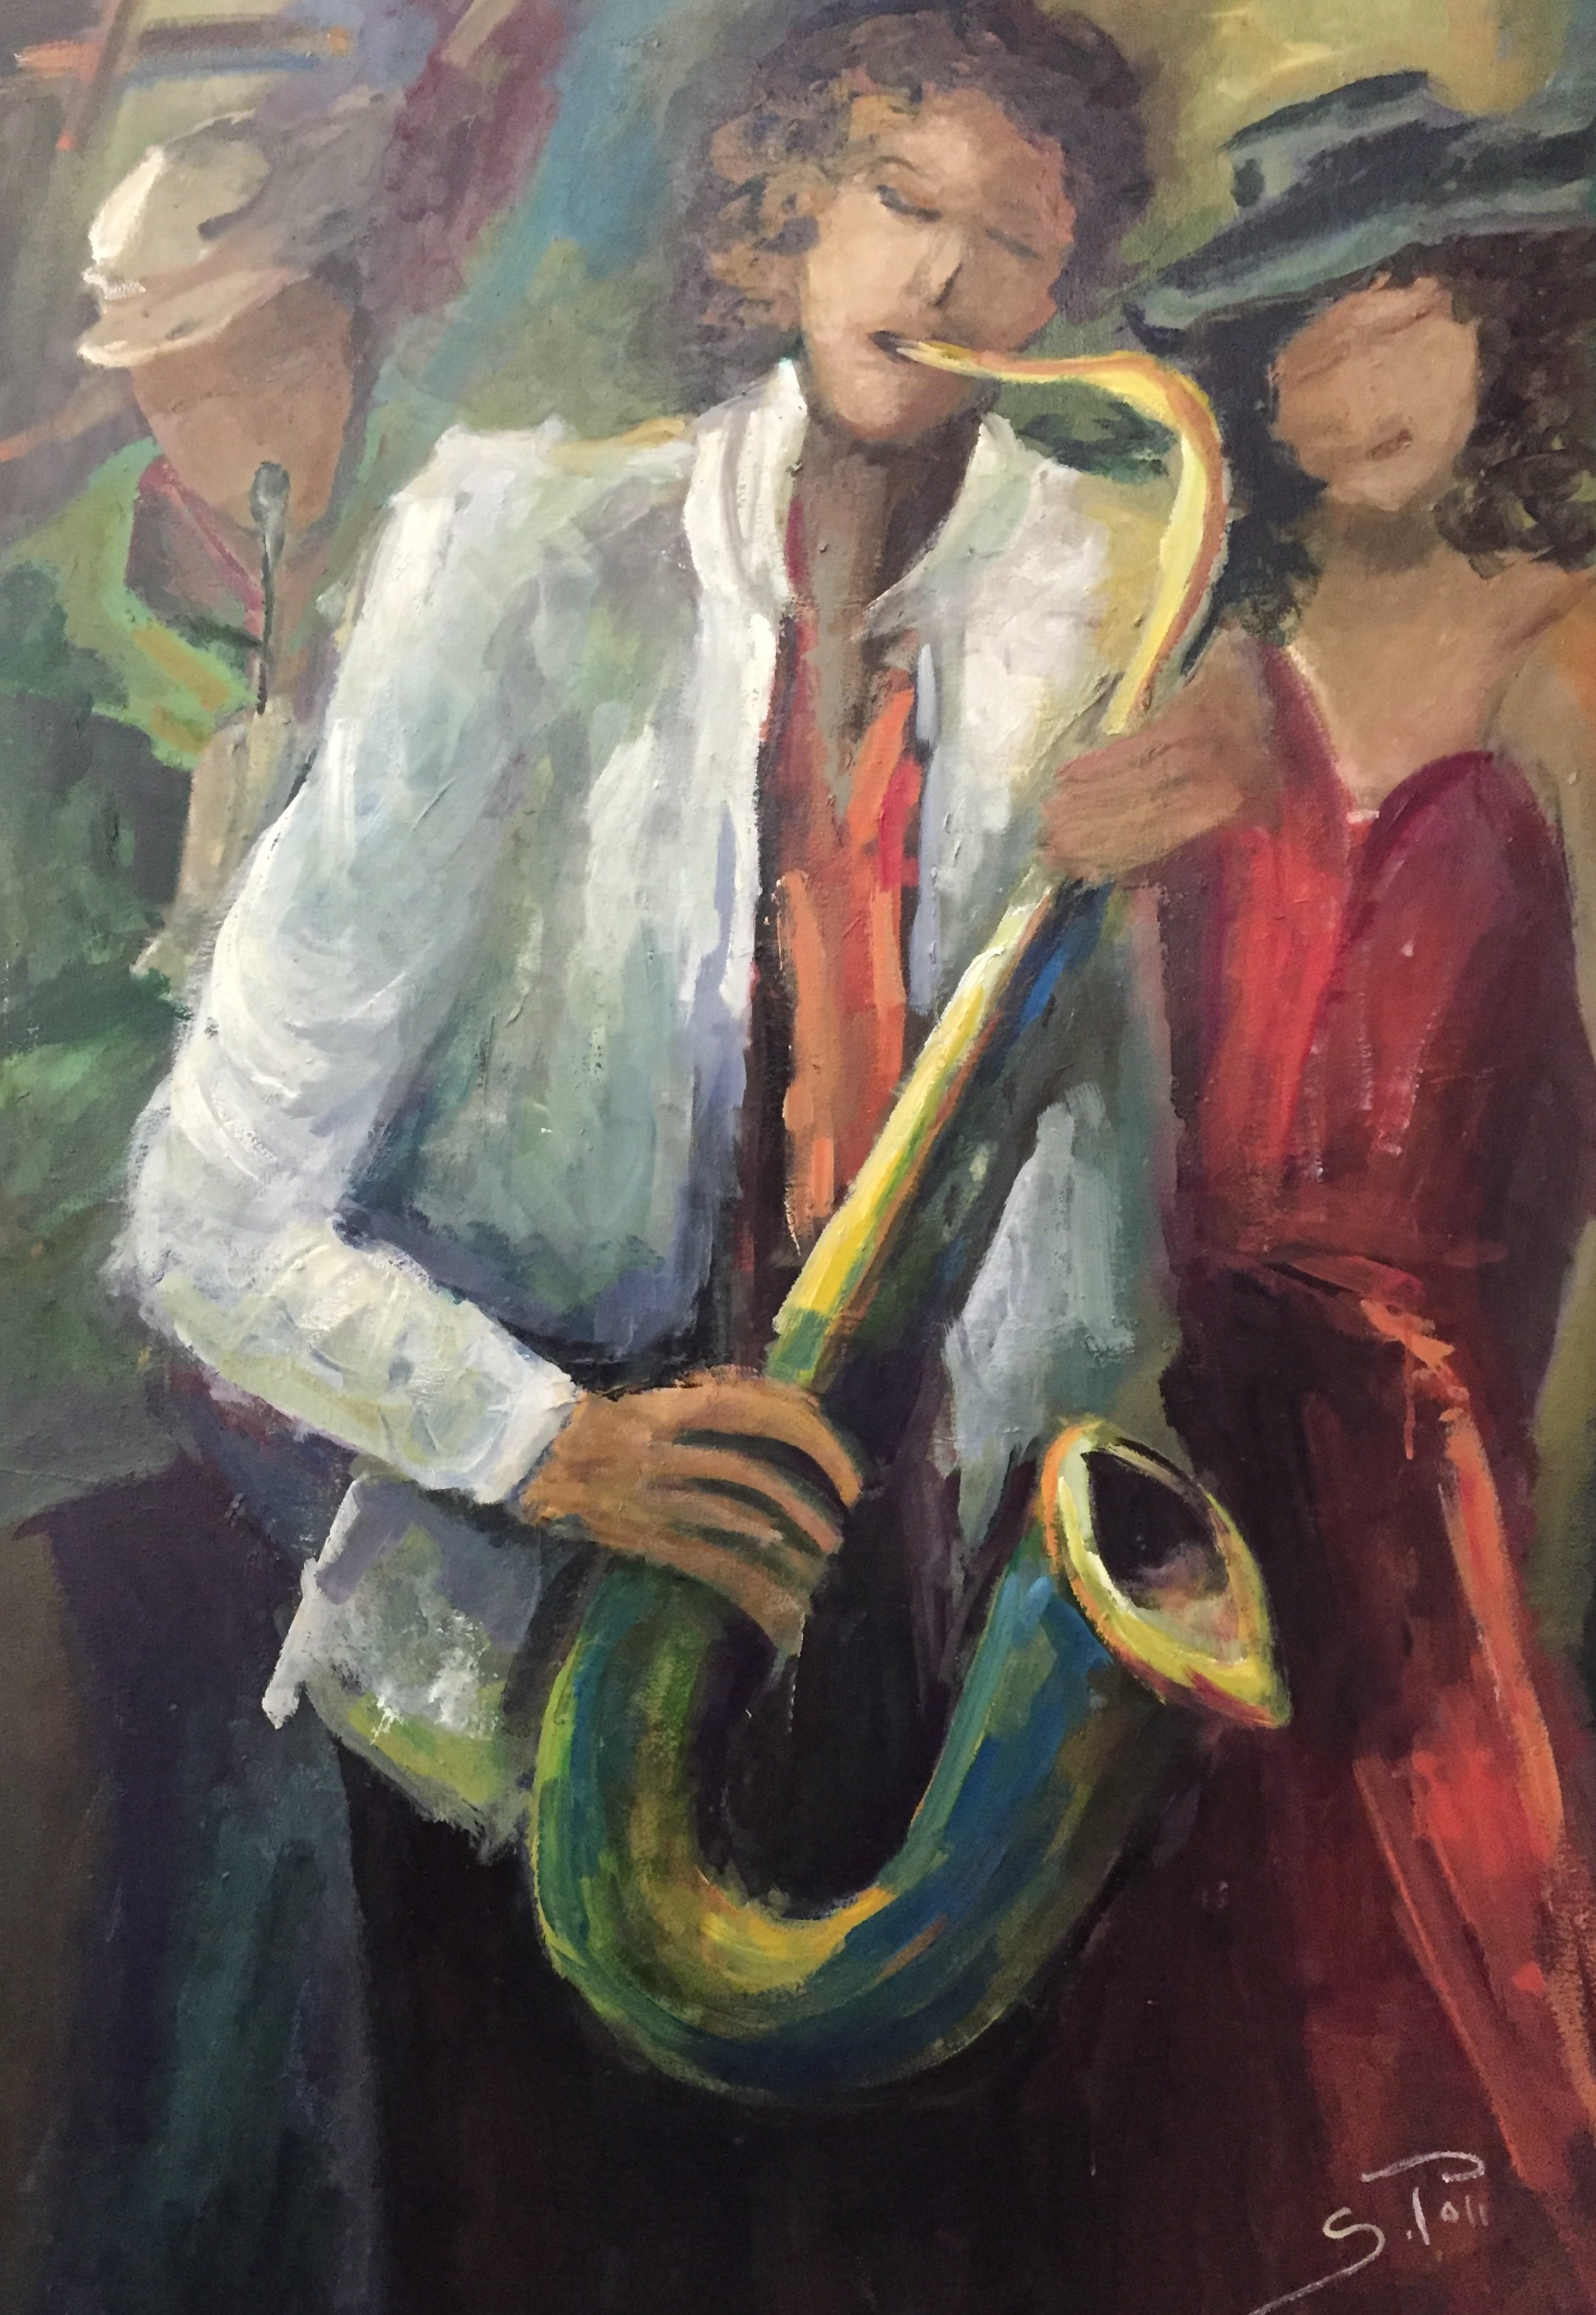 JAZZ BAND AND WOMAN IN RED